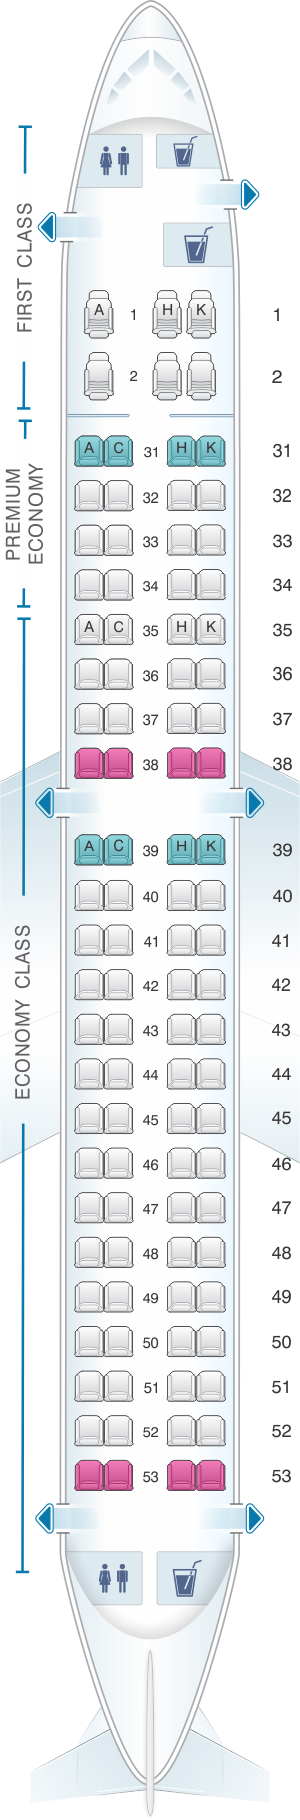 Seat map for China Southern Airlines Embraer RJ190